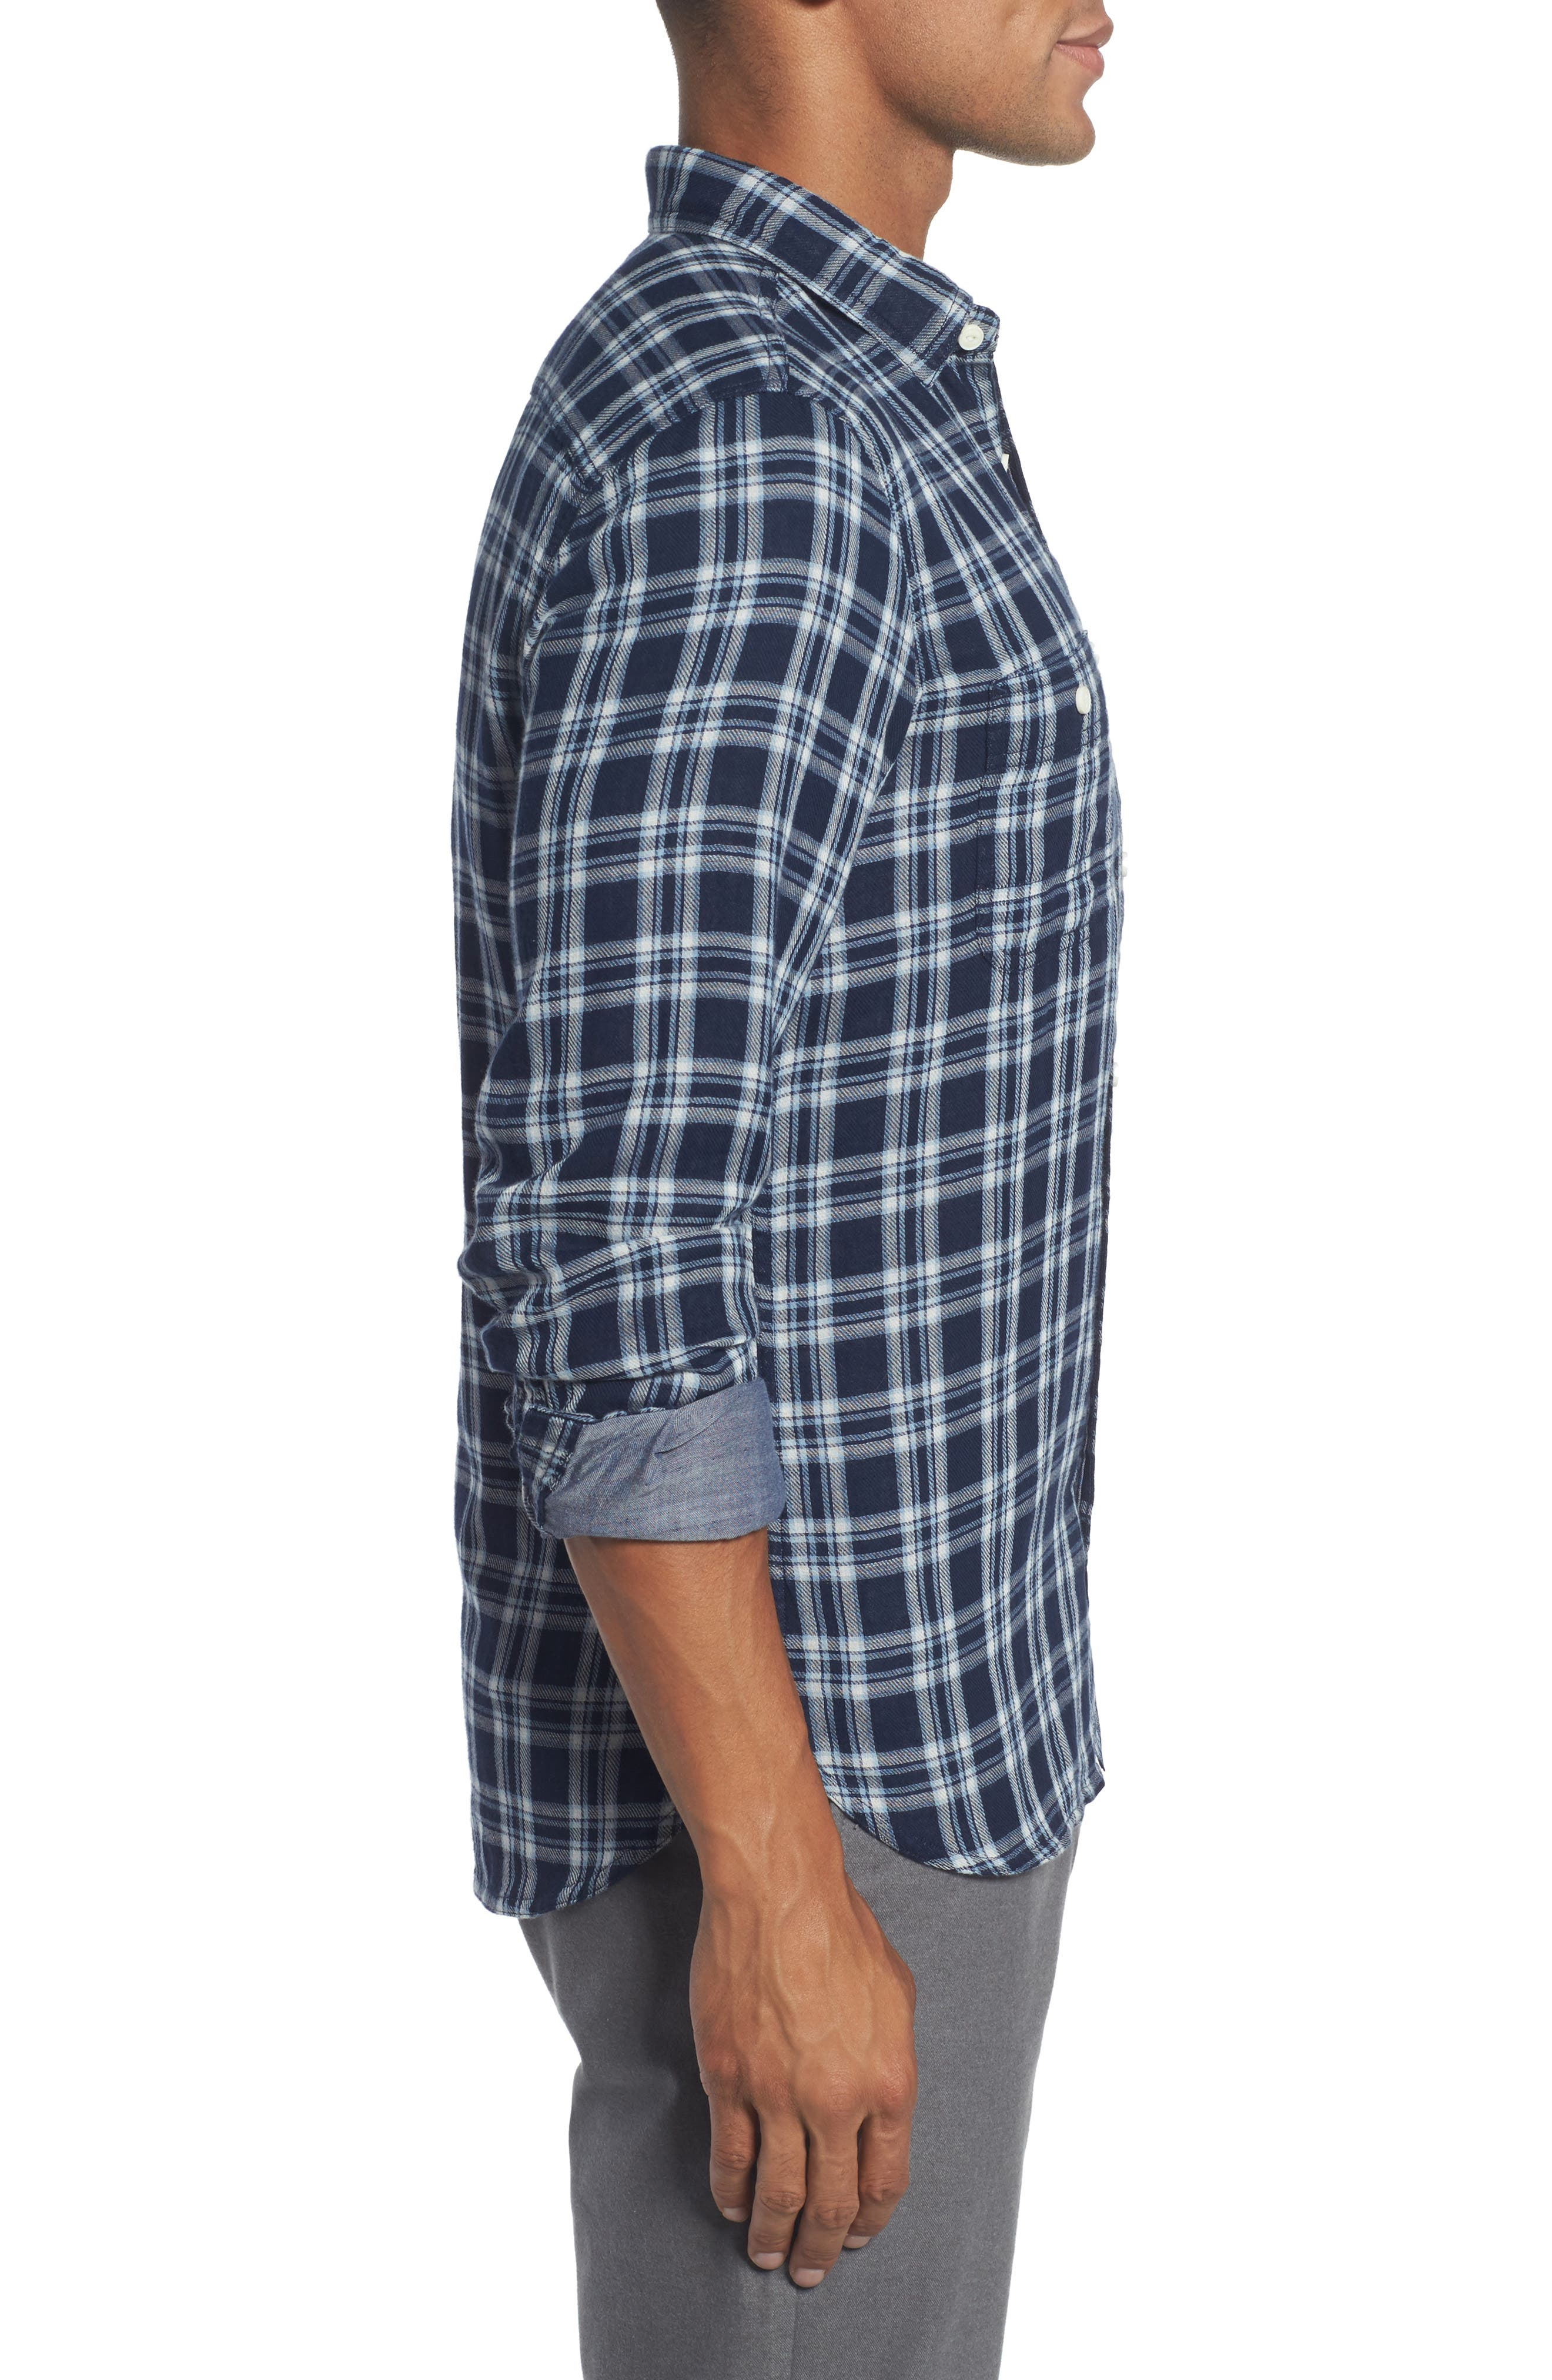 Trim Fit Workwear Duofold Check Sport Shirt,                             Alternate thumbnail 3, color,                             Navy White Chambray Duofold